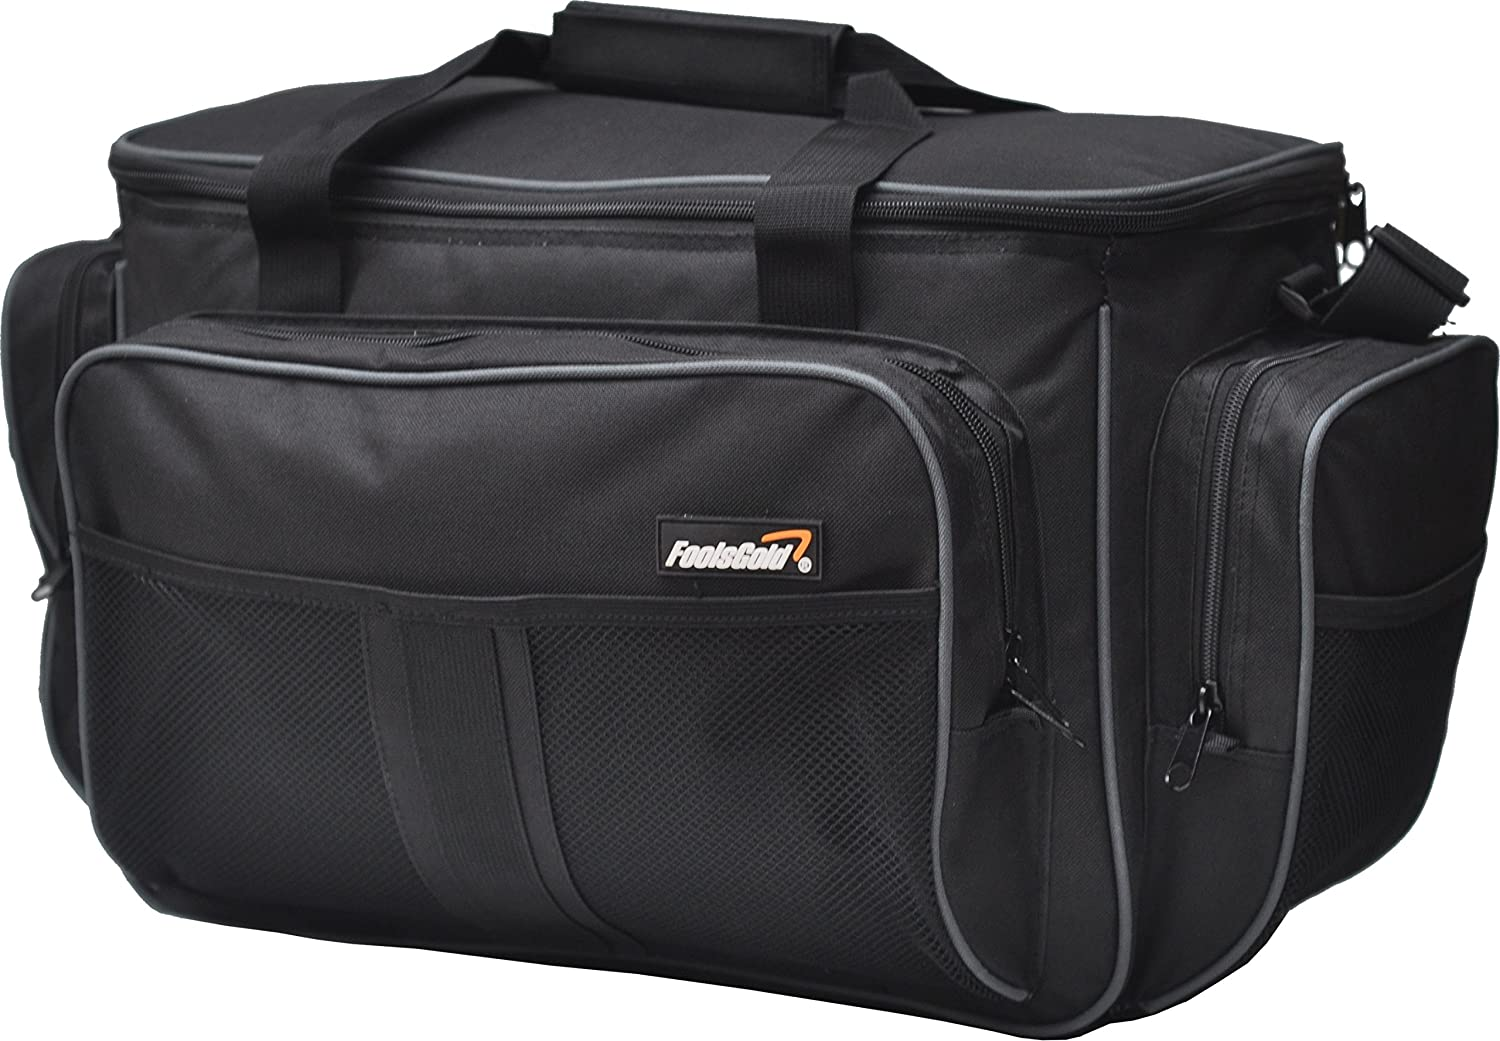 foolsGold Large Insulated 50L Cooler Bag